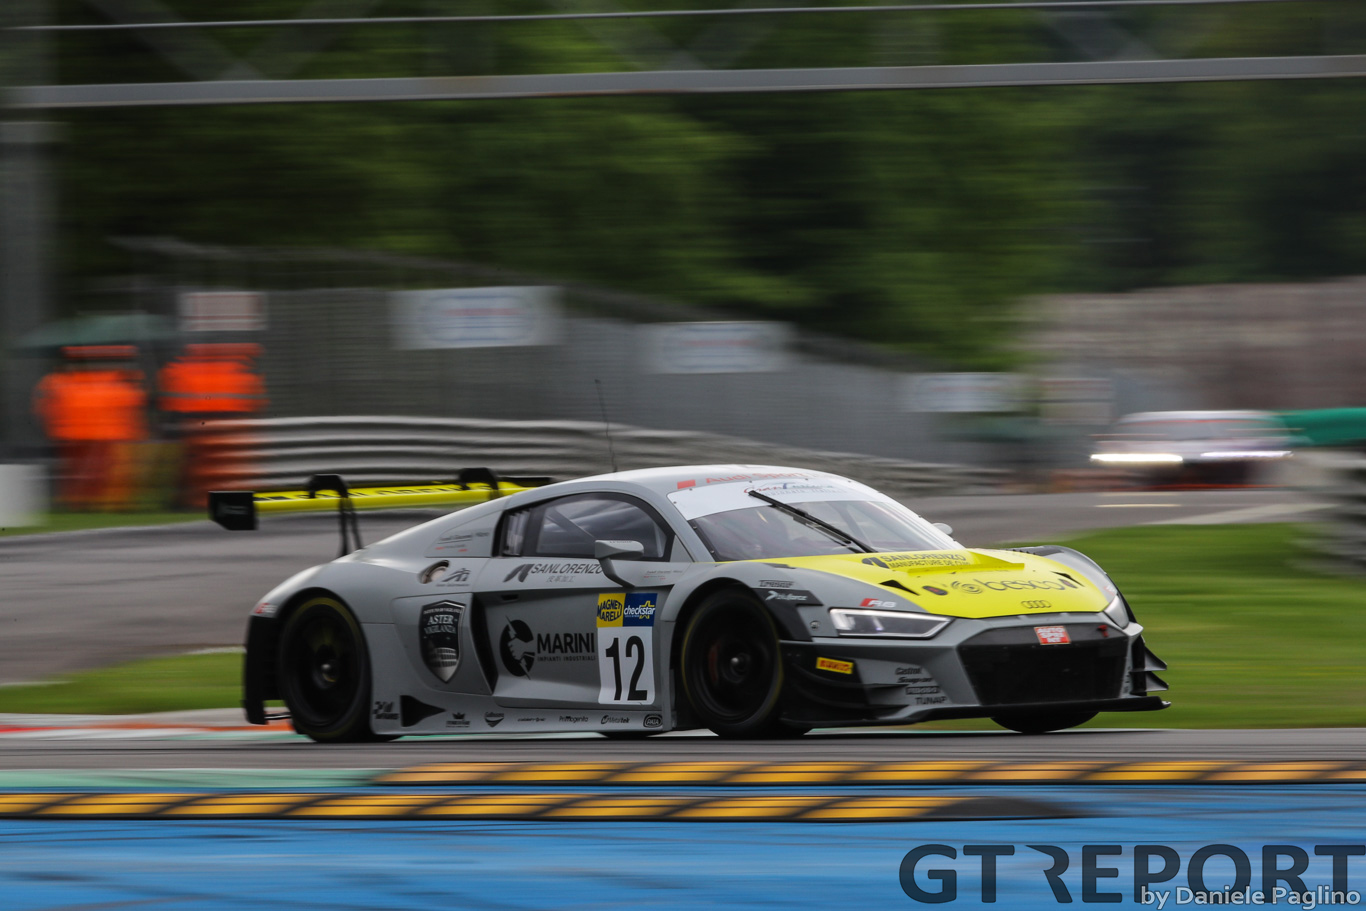 Riccardo Agostini heads to Misano aiming to consolidate his Italian GT Sprint championship lead